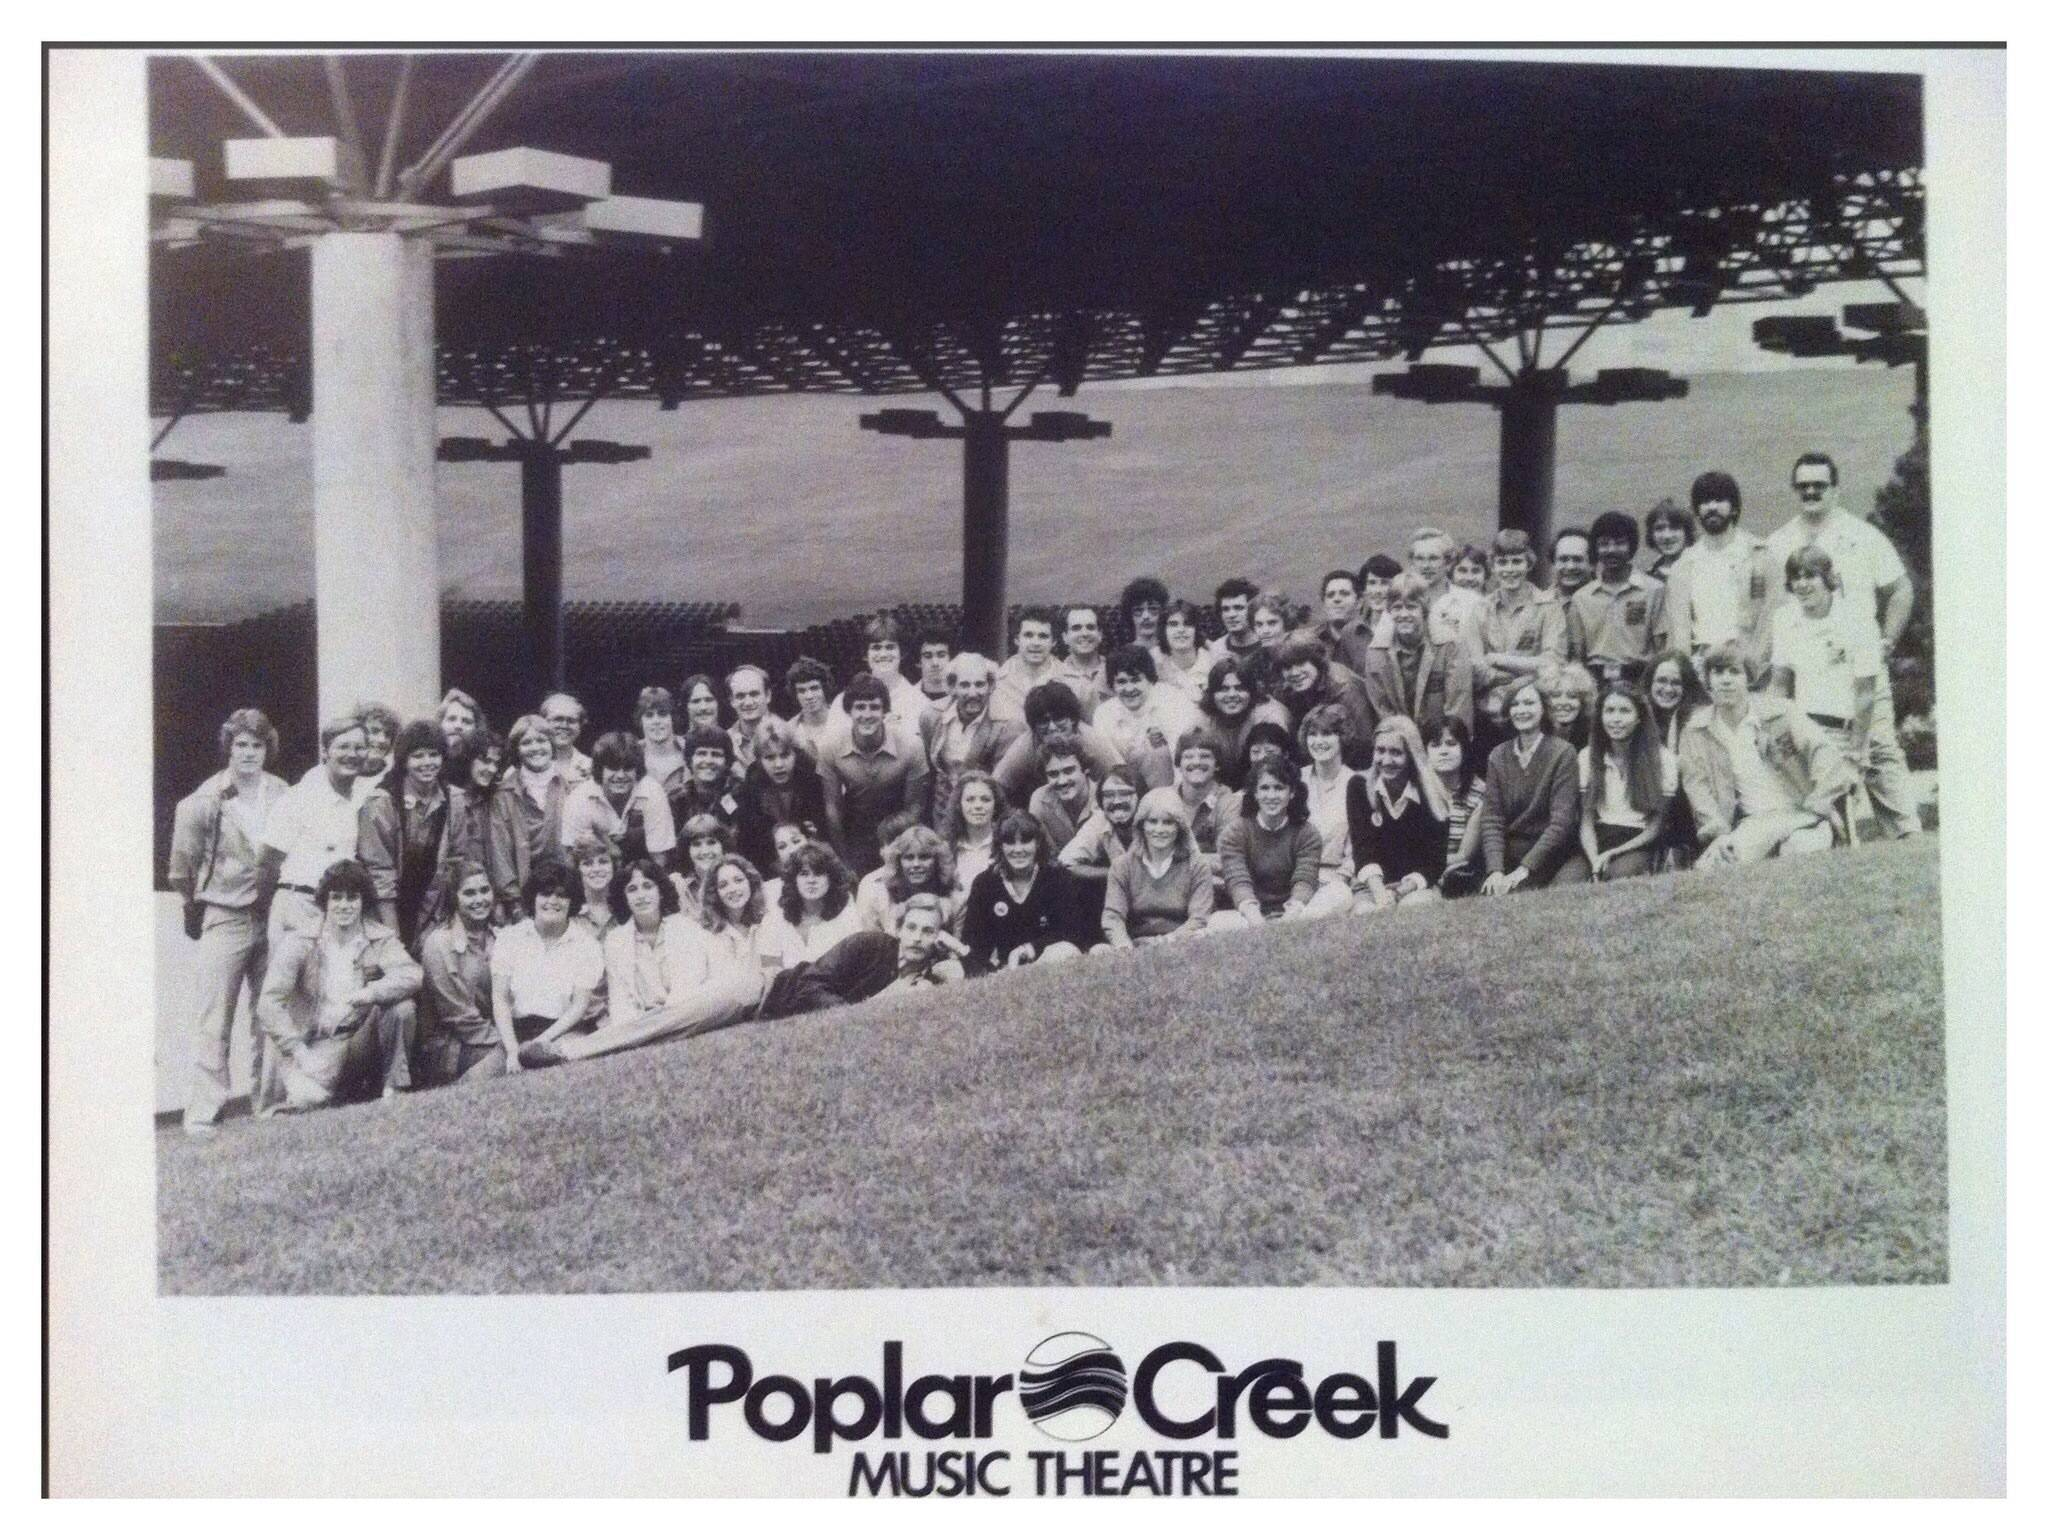 Staffers remember Poplar Creek Music Theatre summers 20 years after closure